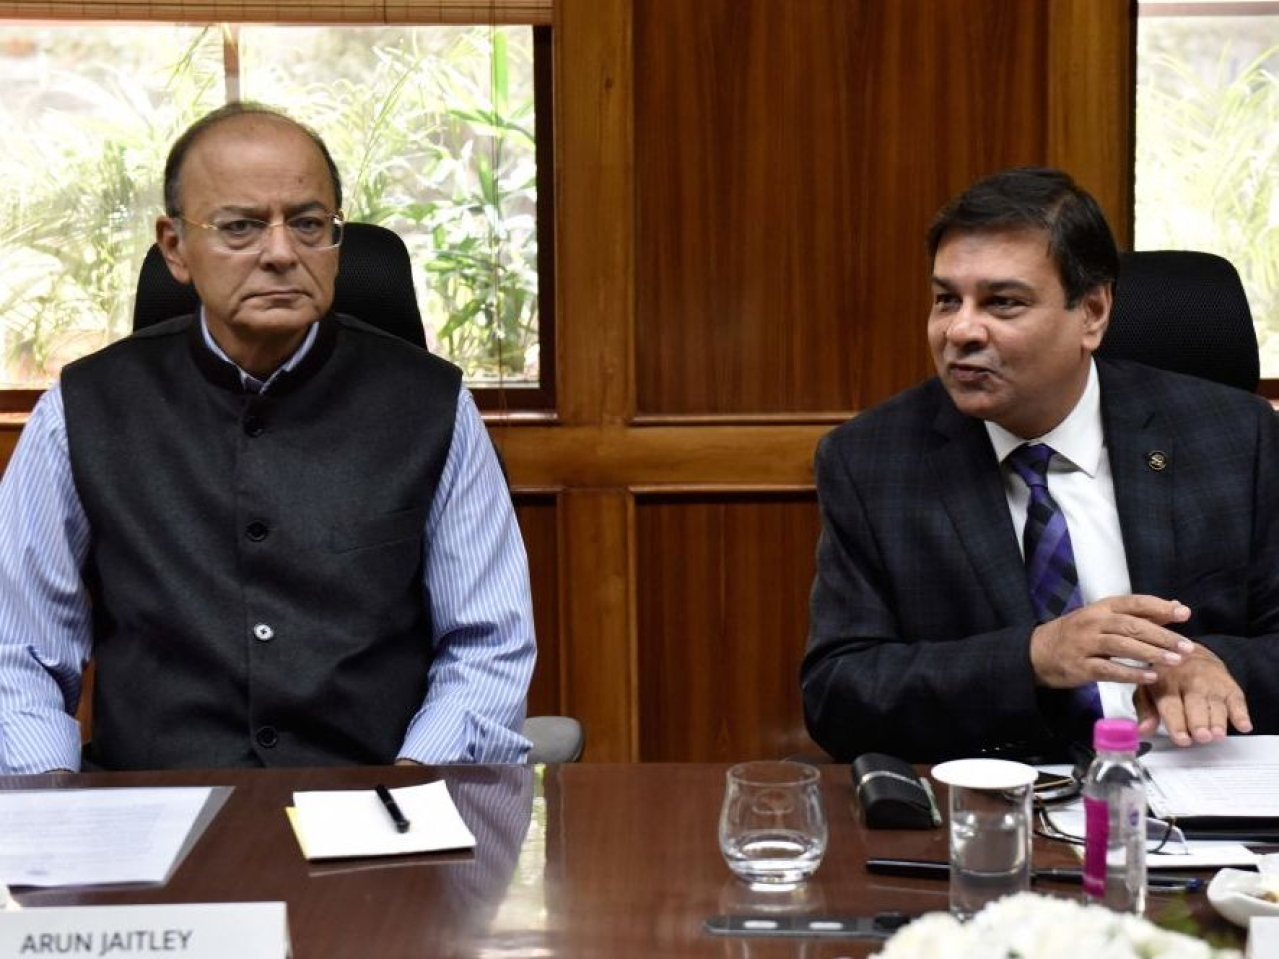 Finance Minister Arun Jaitley and RBI Governor Urjit Patel. (Mohd Zakir/Hindustan Times via Getty Images)